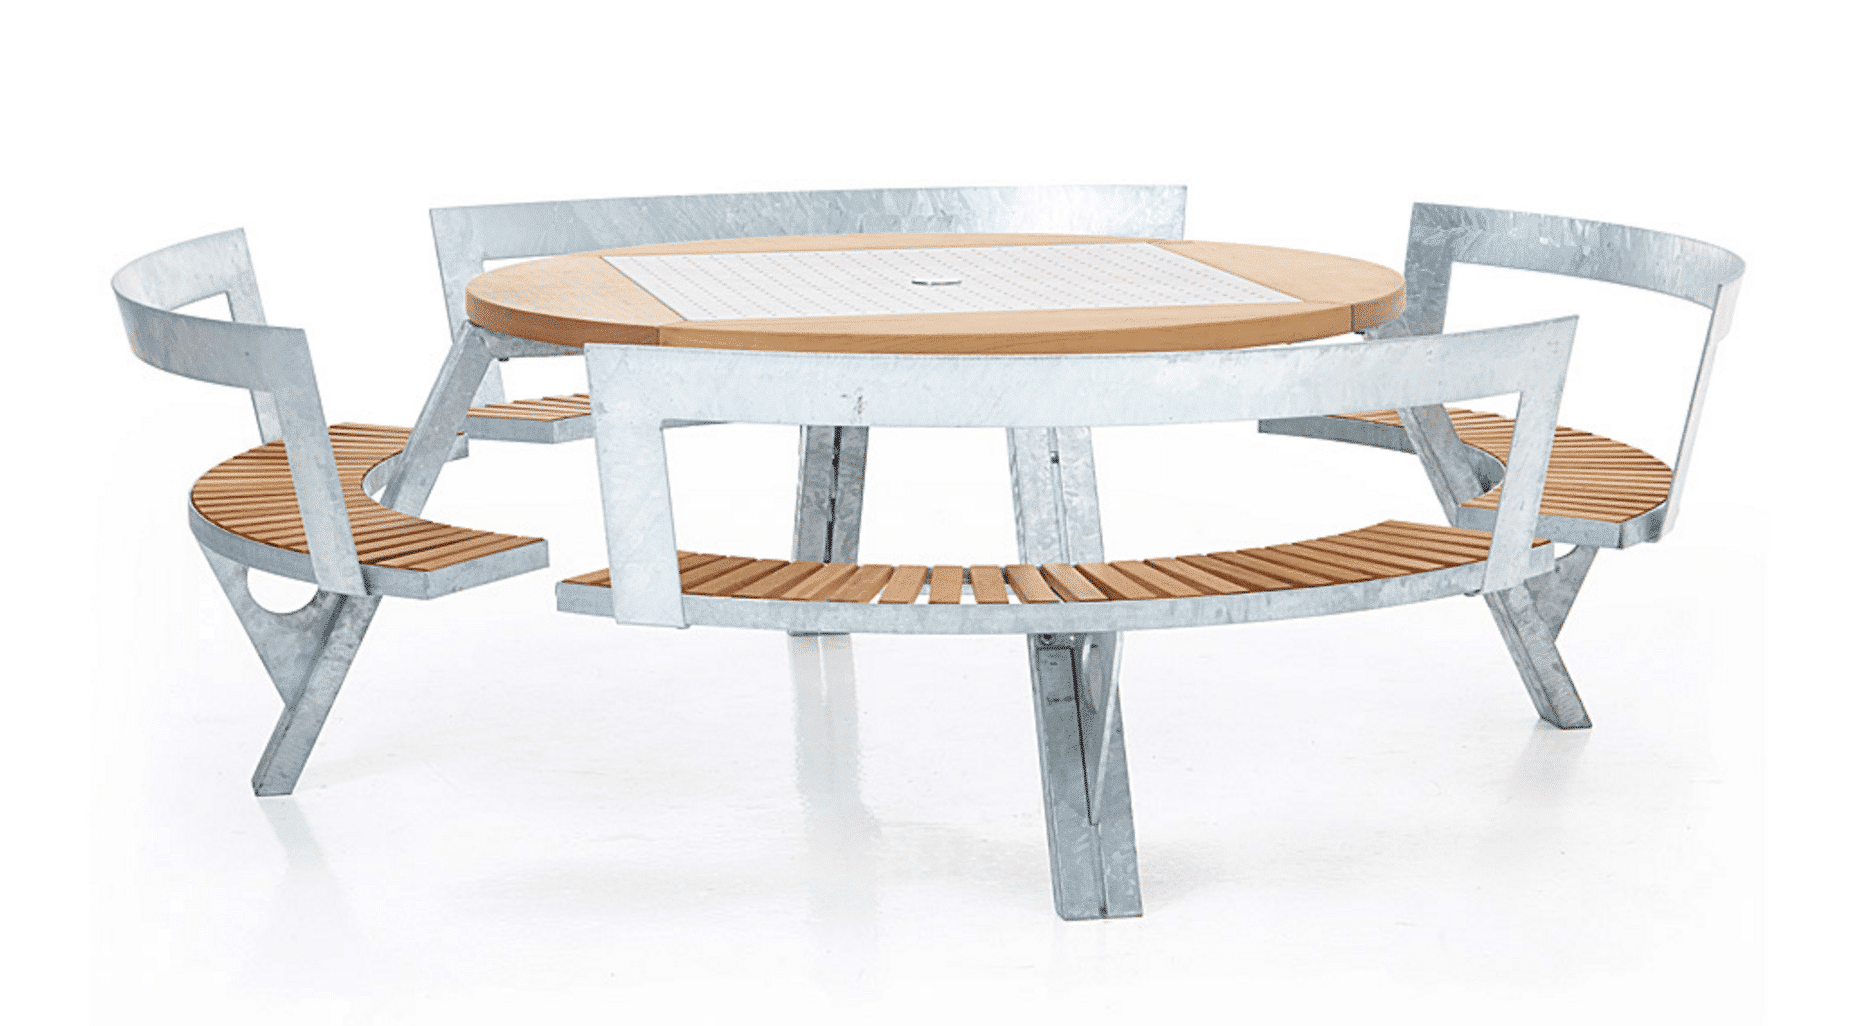 Spaceist Gargantua picnic table